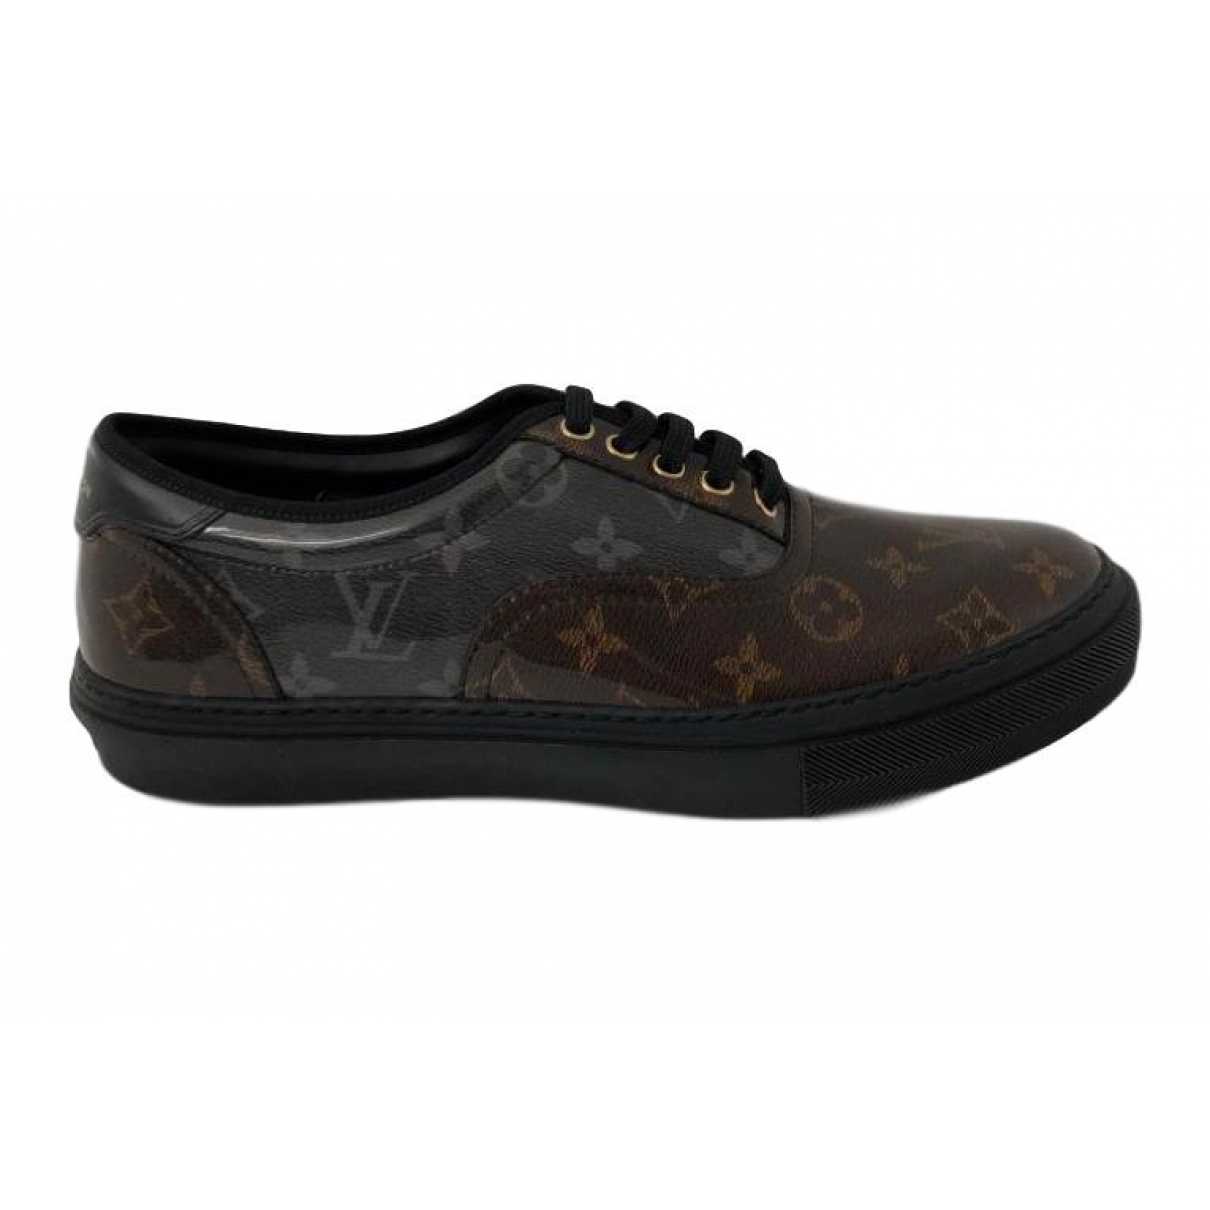 Louis Vuitton Trocadero Brown Cloth Trainers for Men 11 US